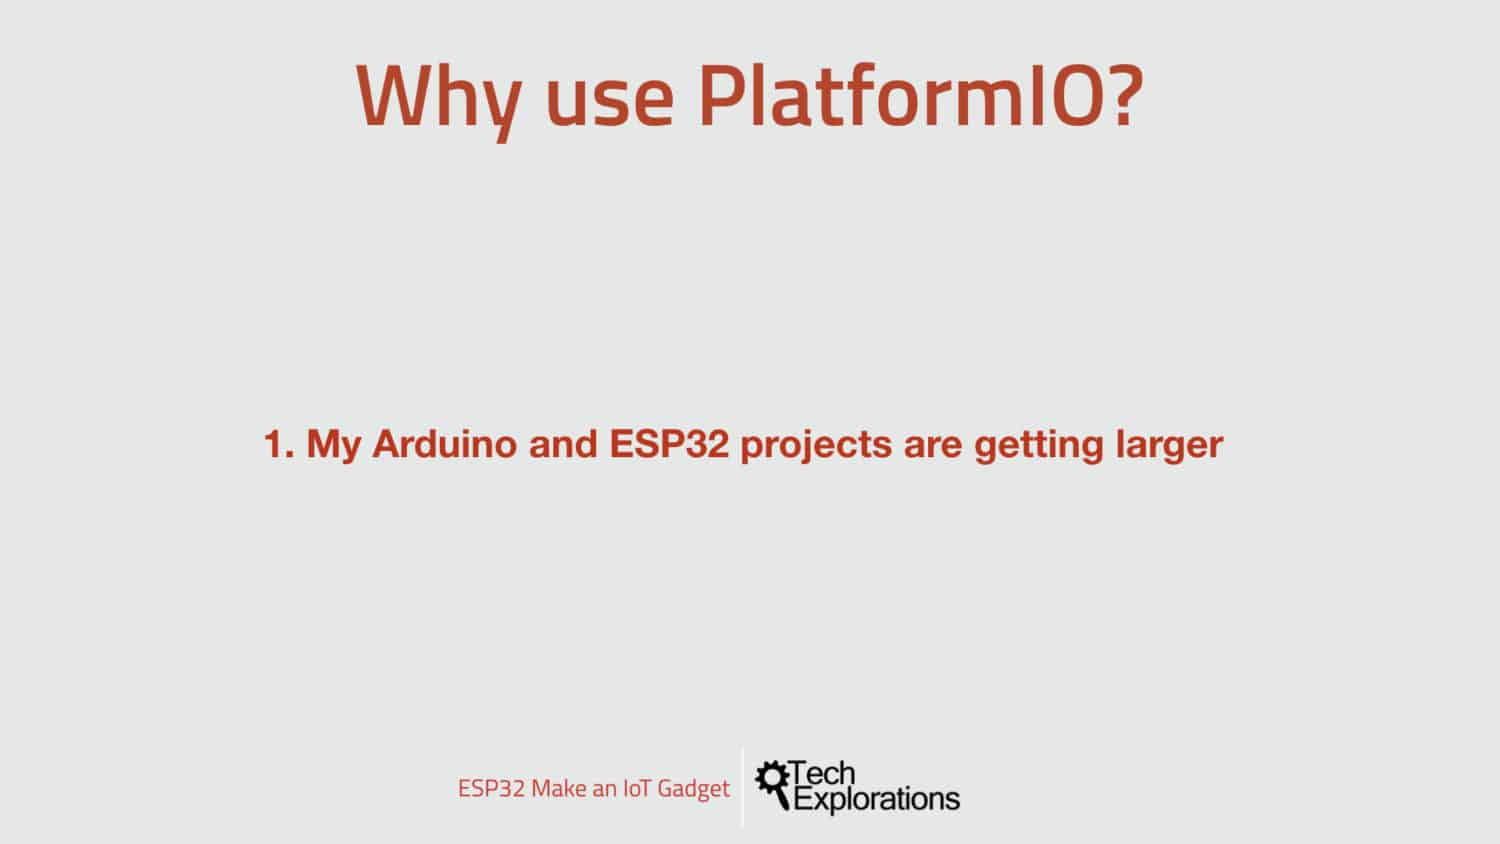 Why use PlatformIO, reason 1: my projects are getting larger.